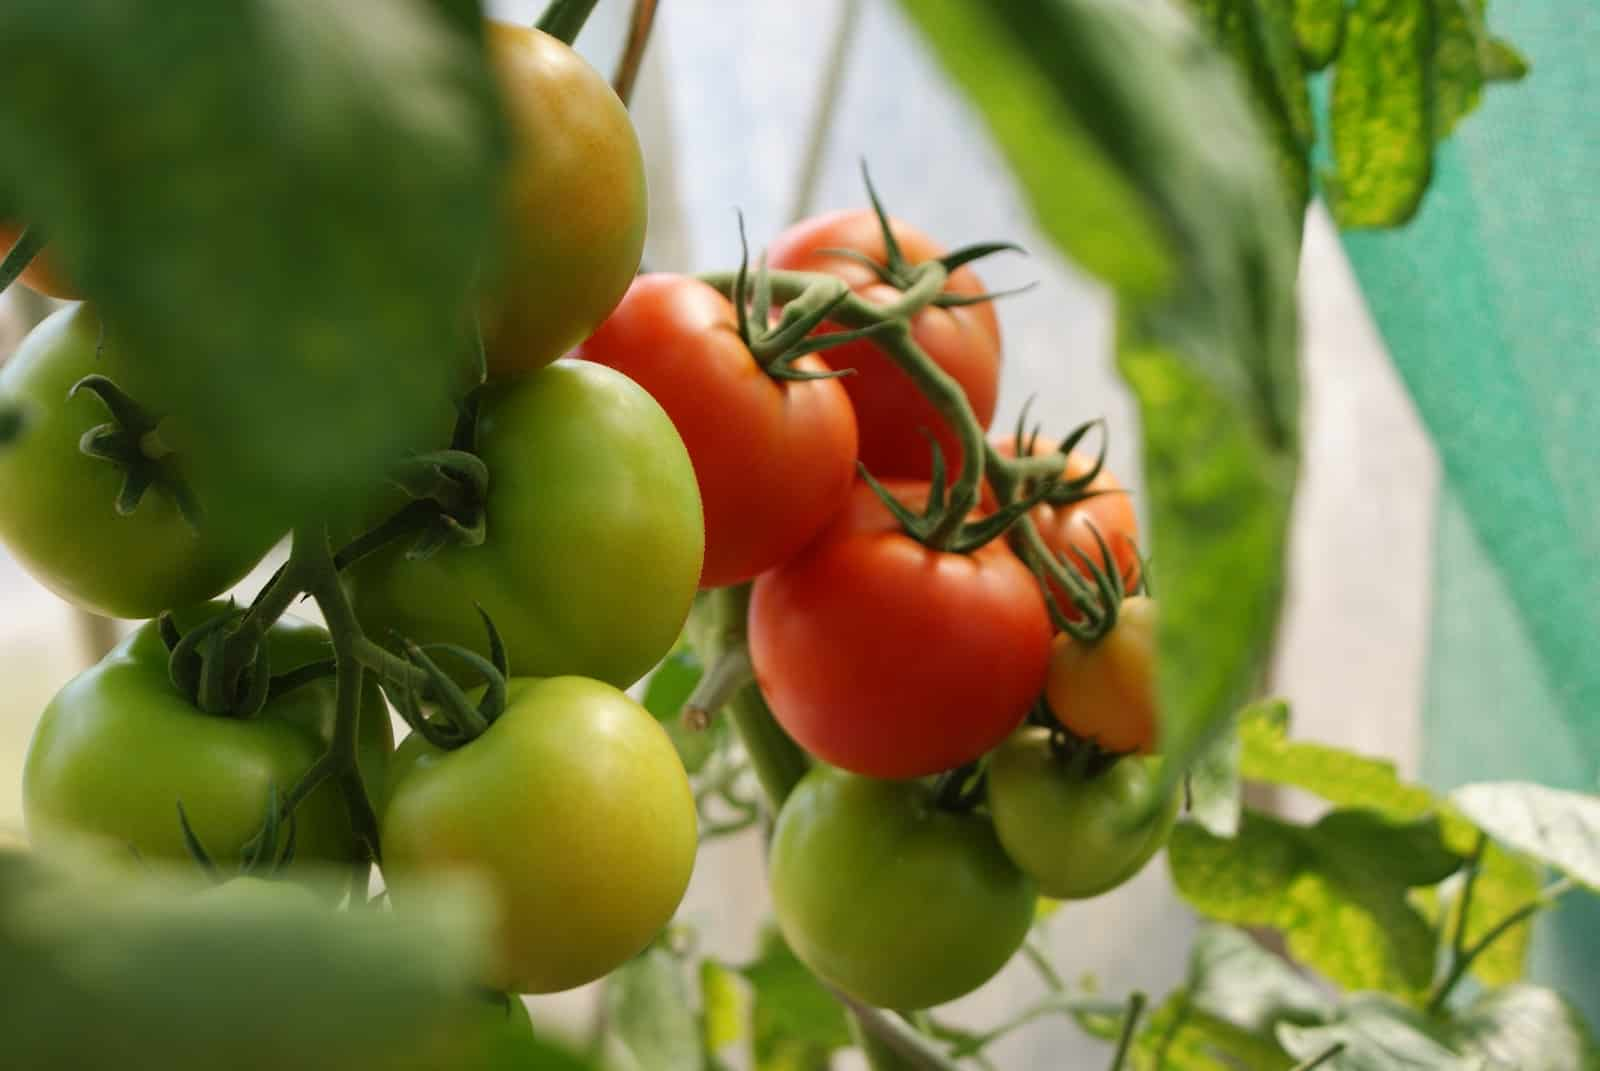 green and red tomatoes close-up photo